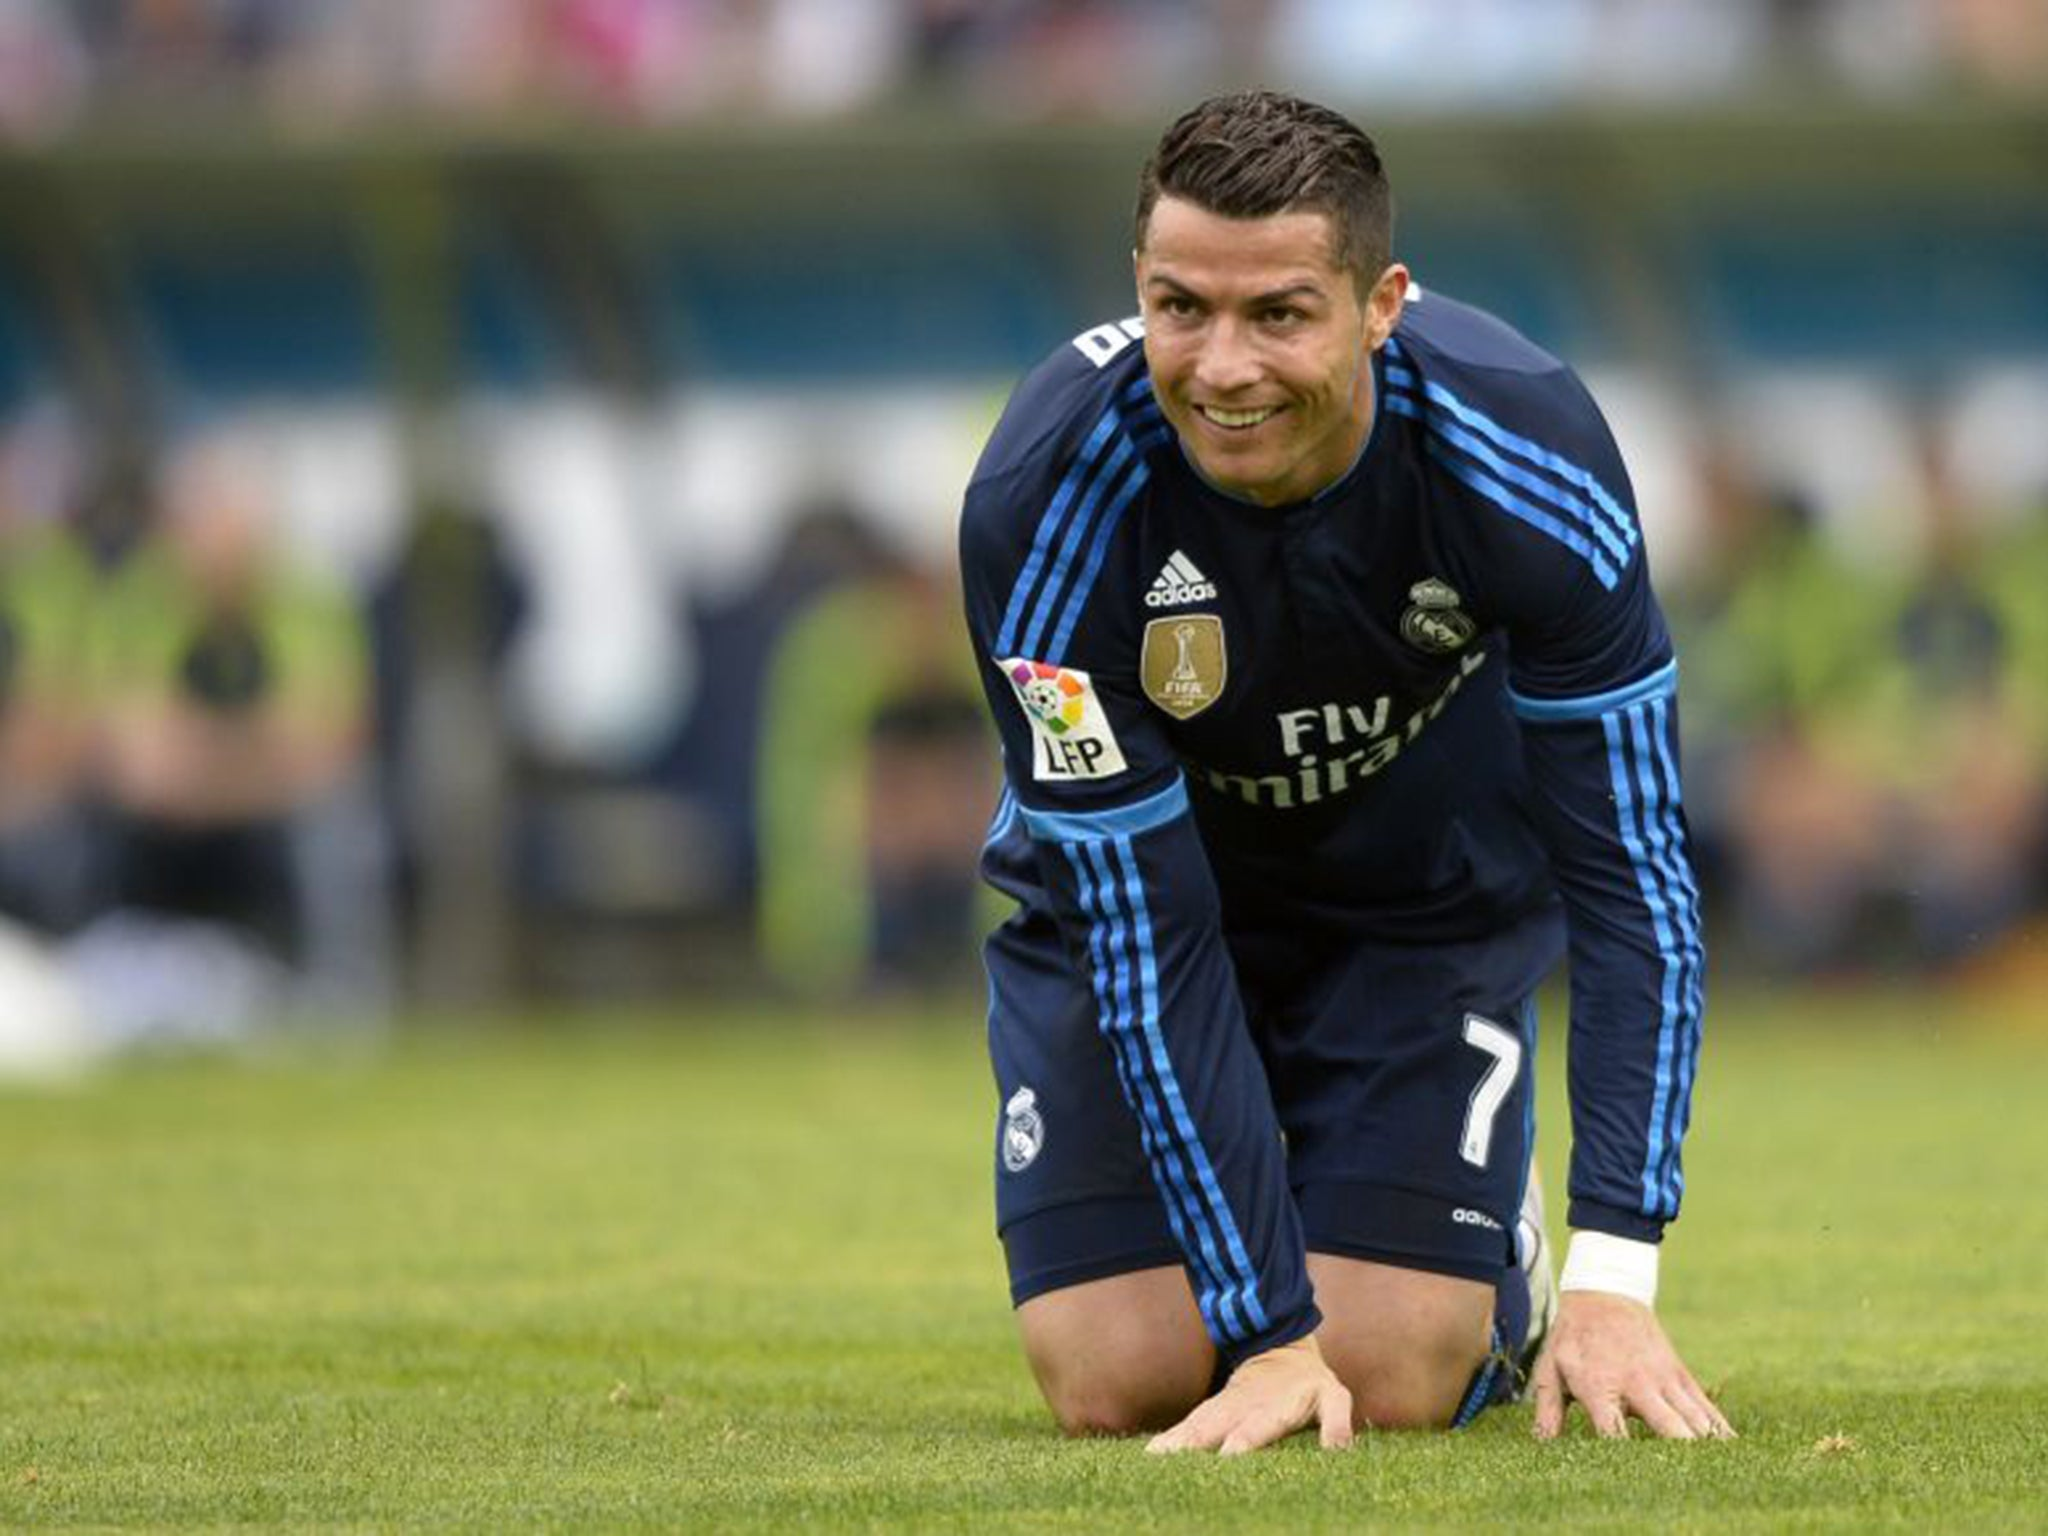 Manchester United On Alert After Cristiano Ronaldo's Best